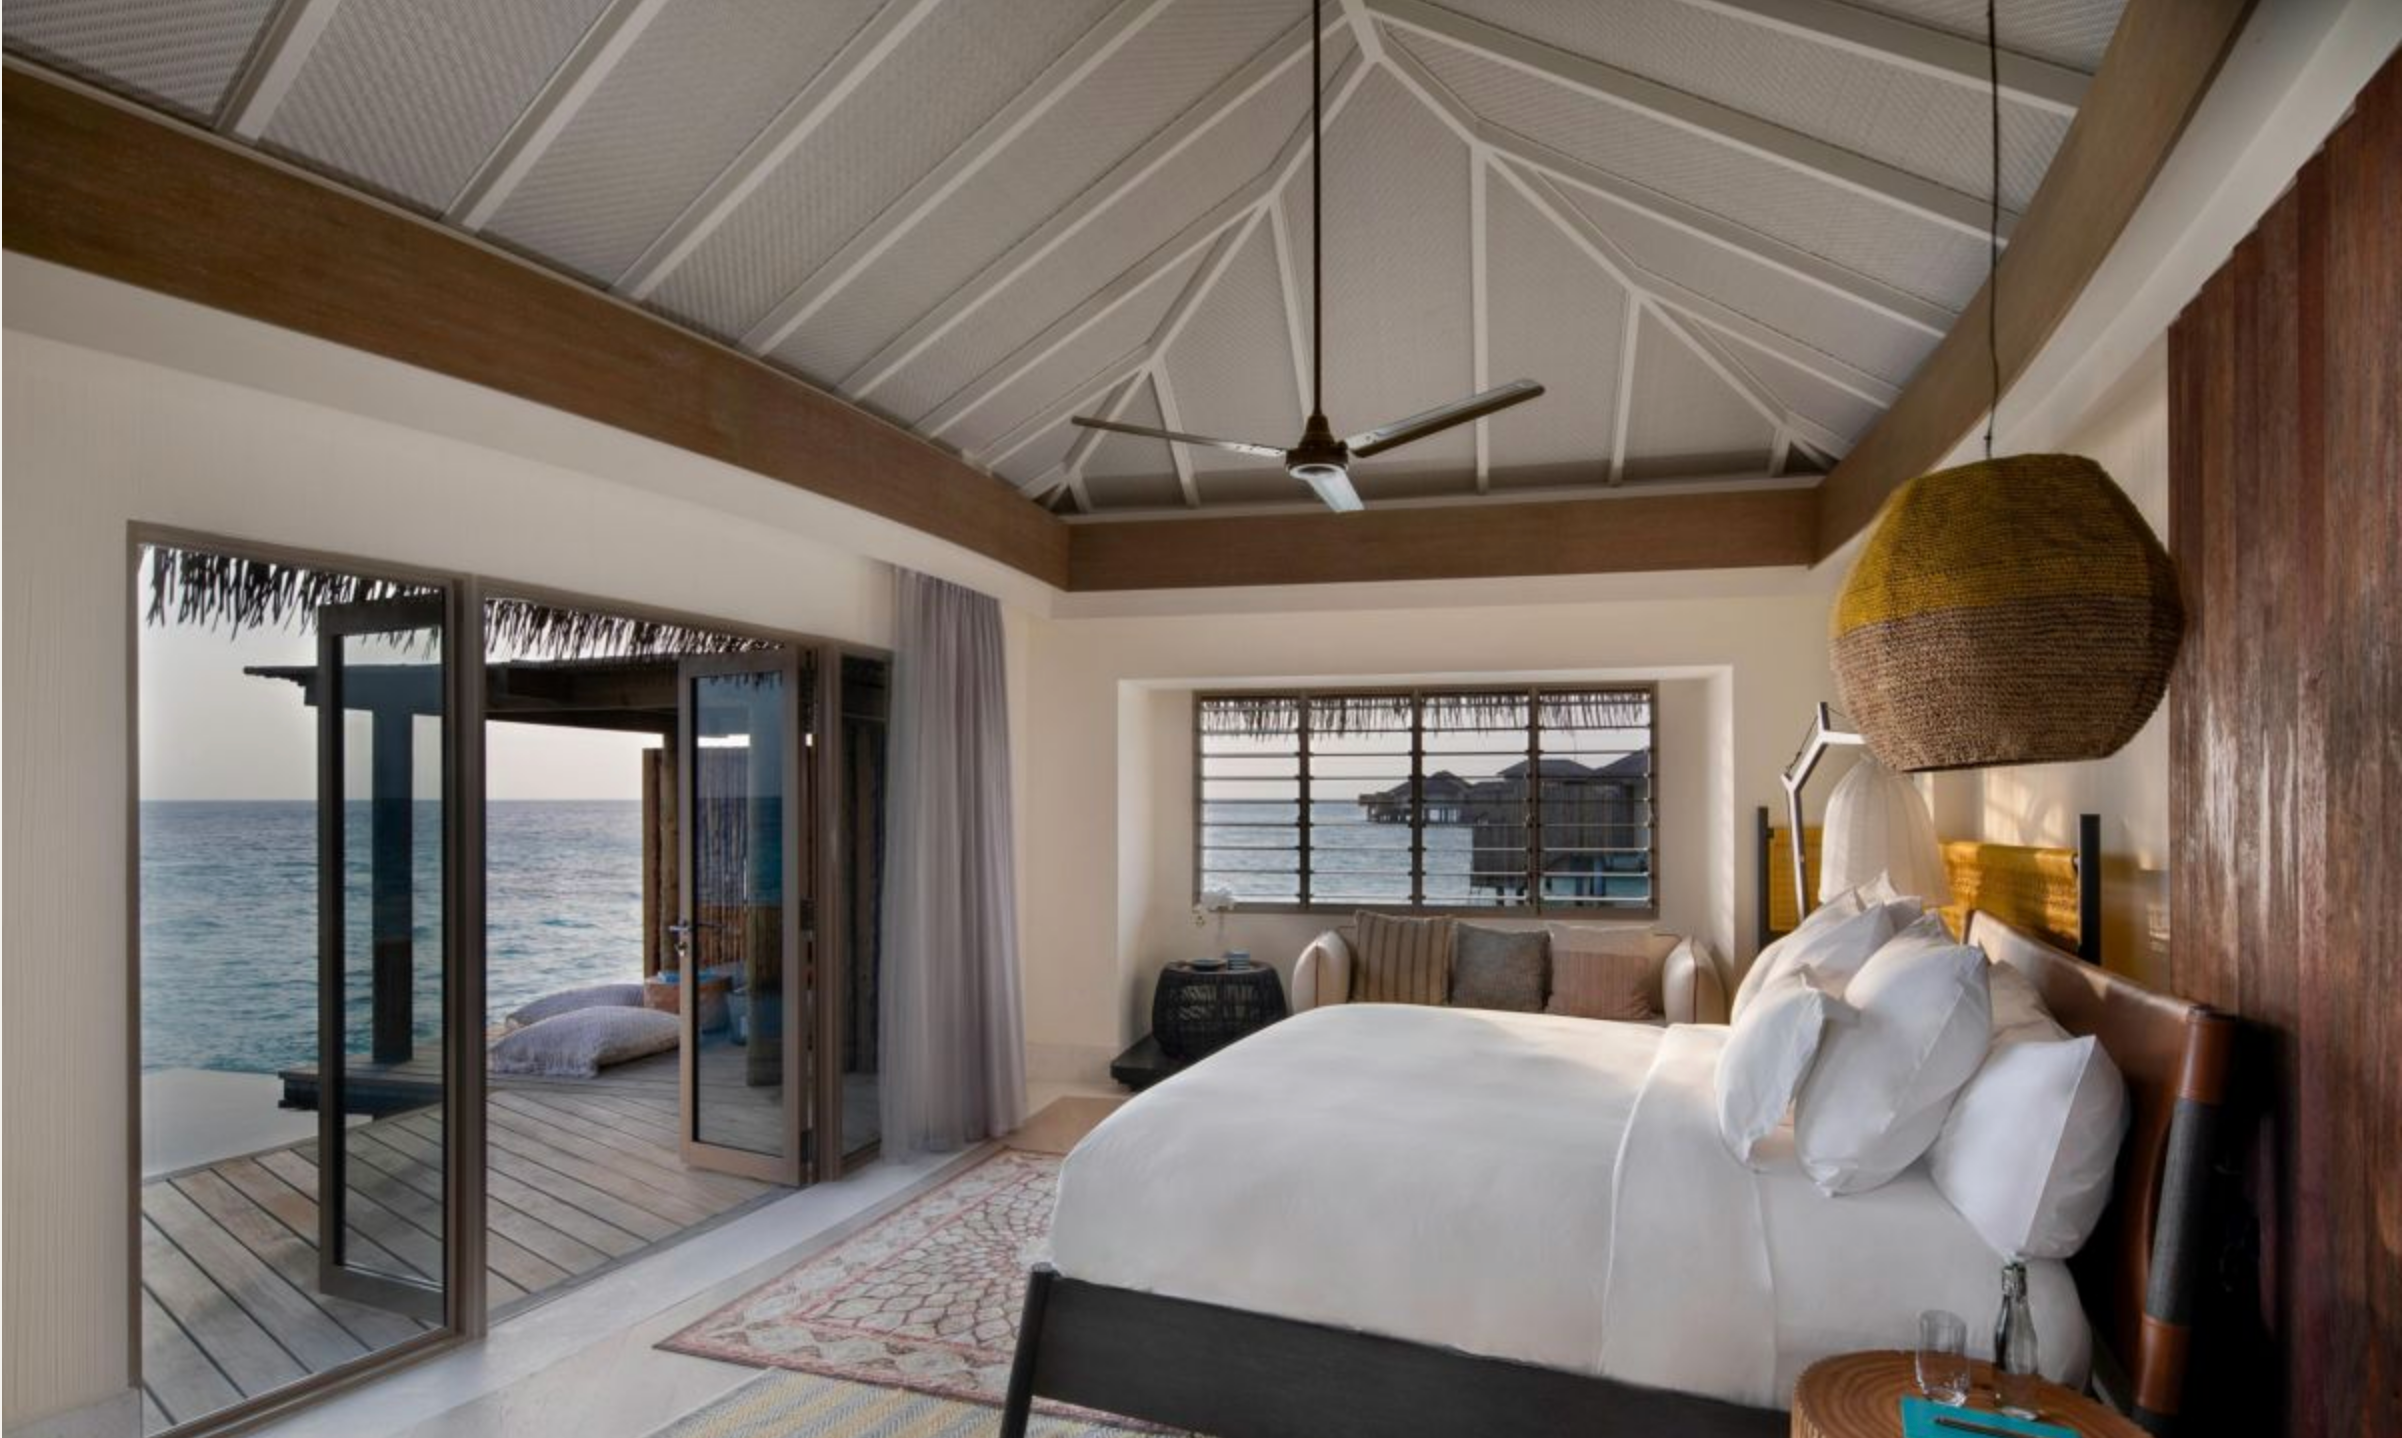 ic maldives - AMAZING DEAL - $500 a night water villa with pool at the Intercontinental Maldives!